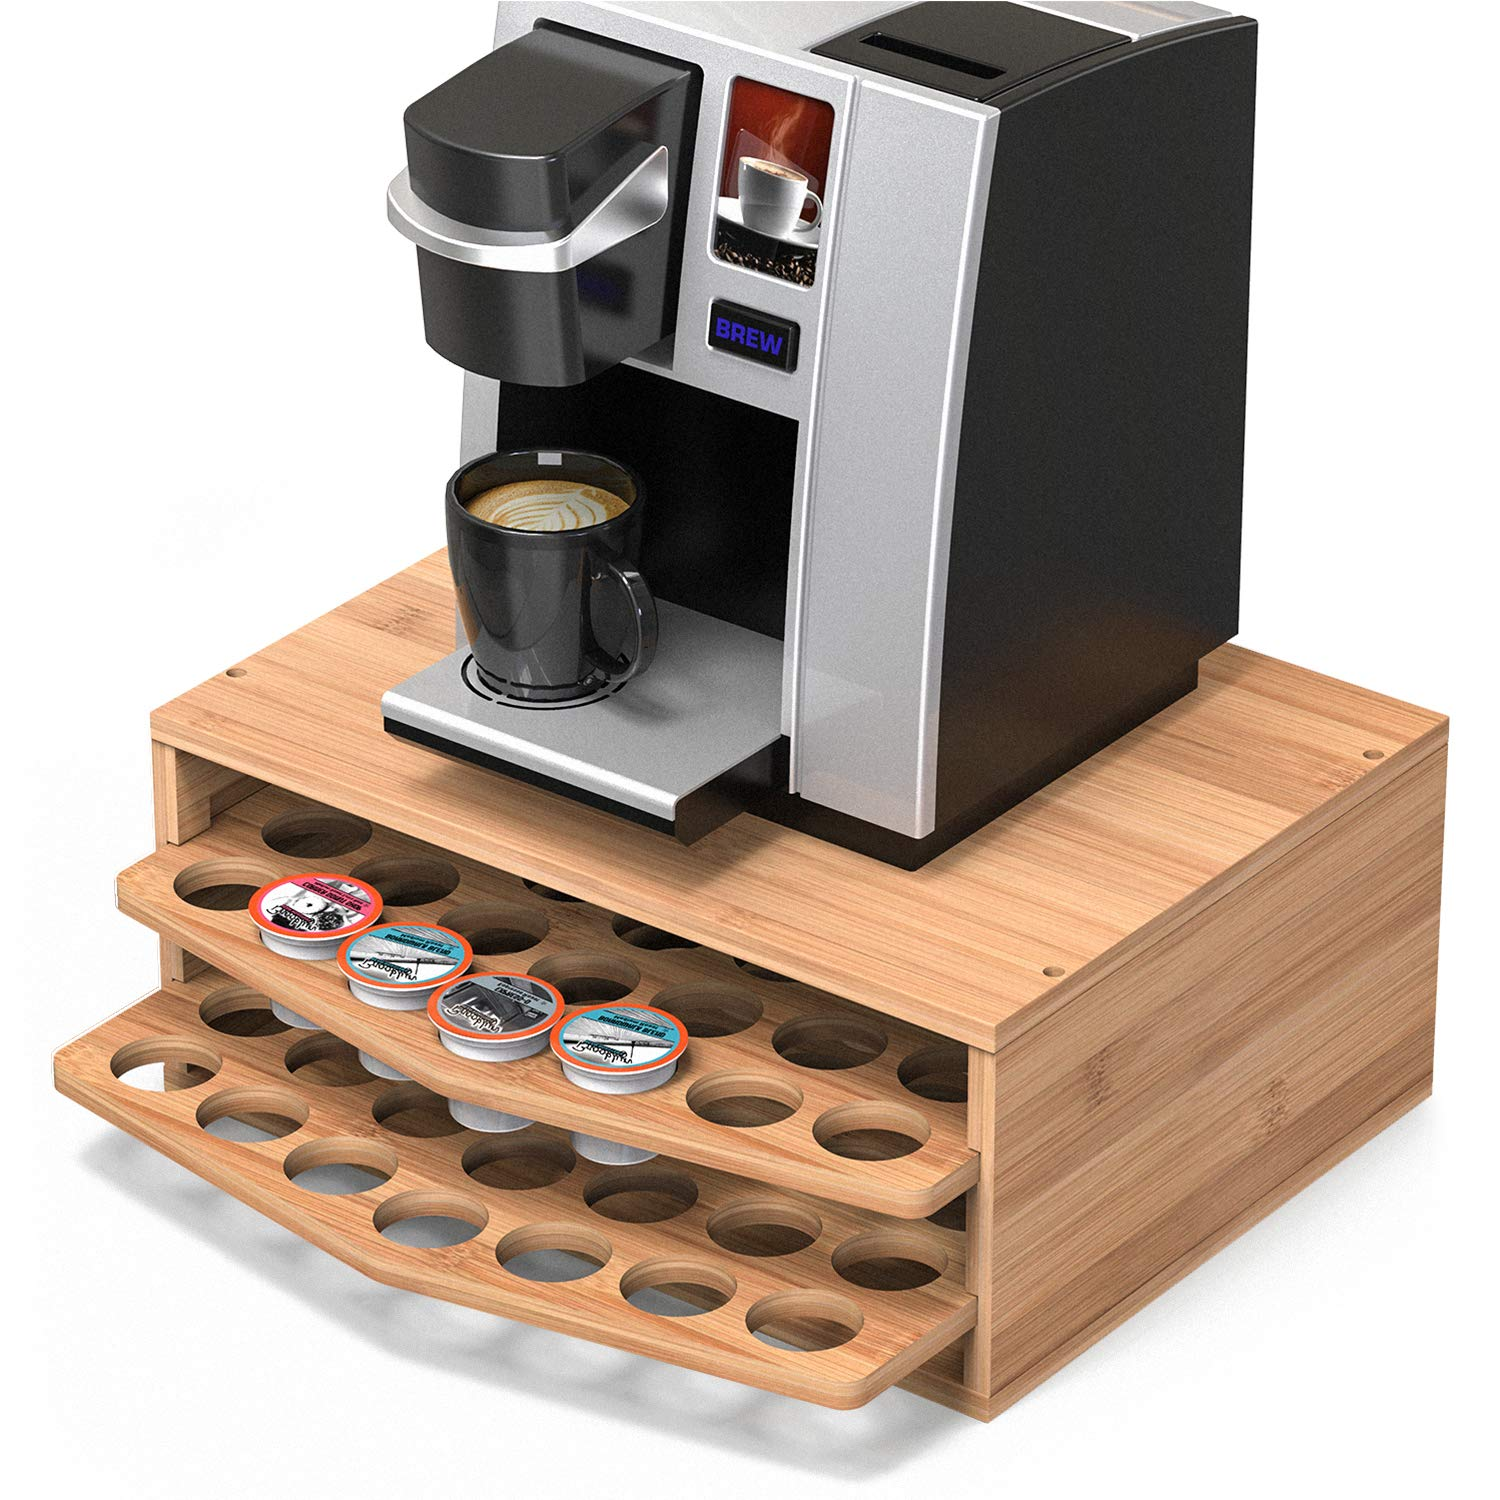 WELL WENG 70 Capacity 2-tier Bamboo Coffee Pod Holder Storage Organizer with Drawer for Keurig K-Cup Pods by WELL WENG